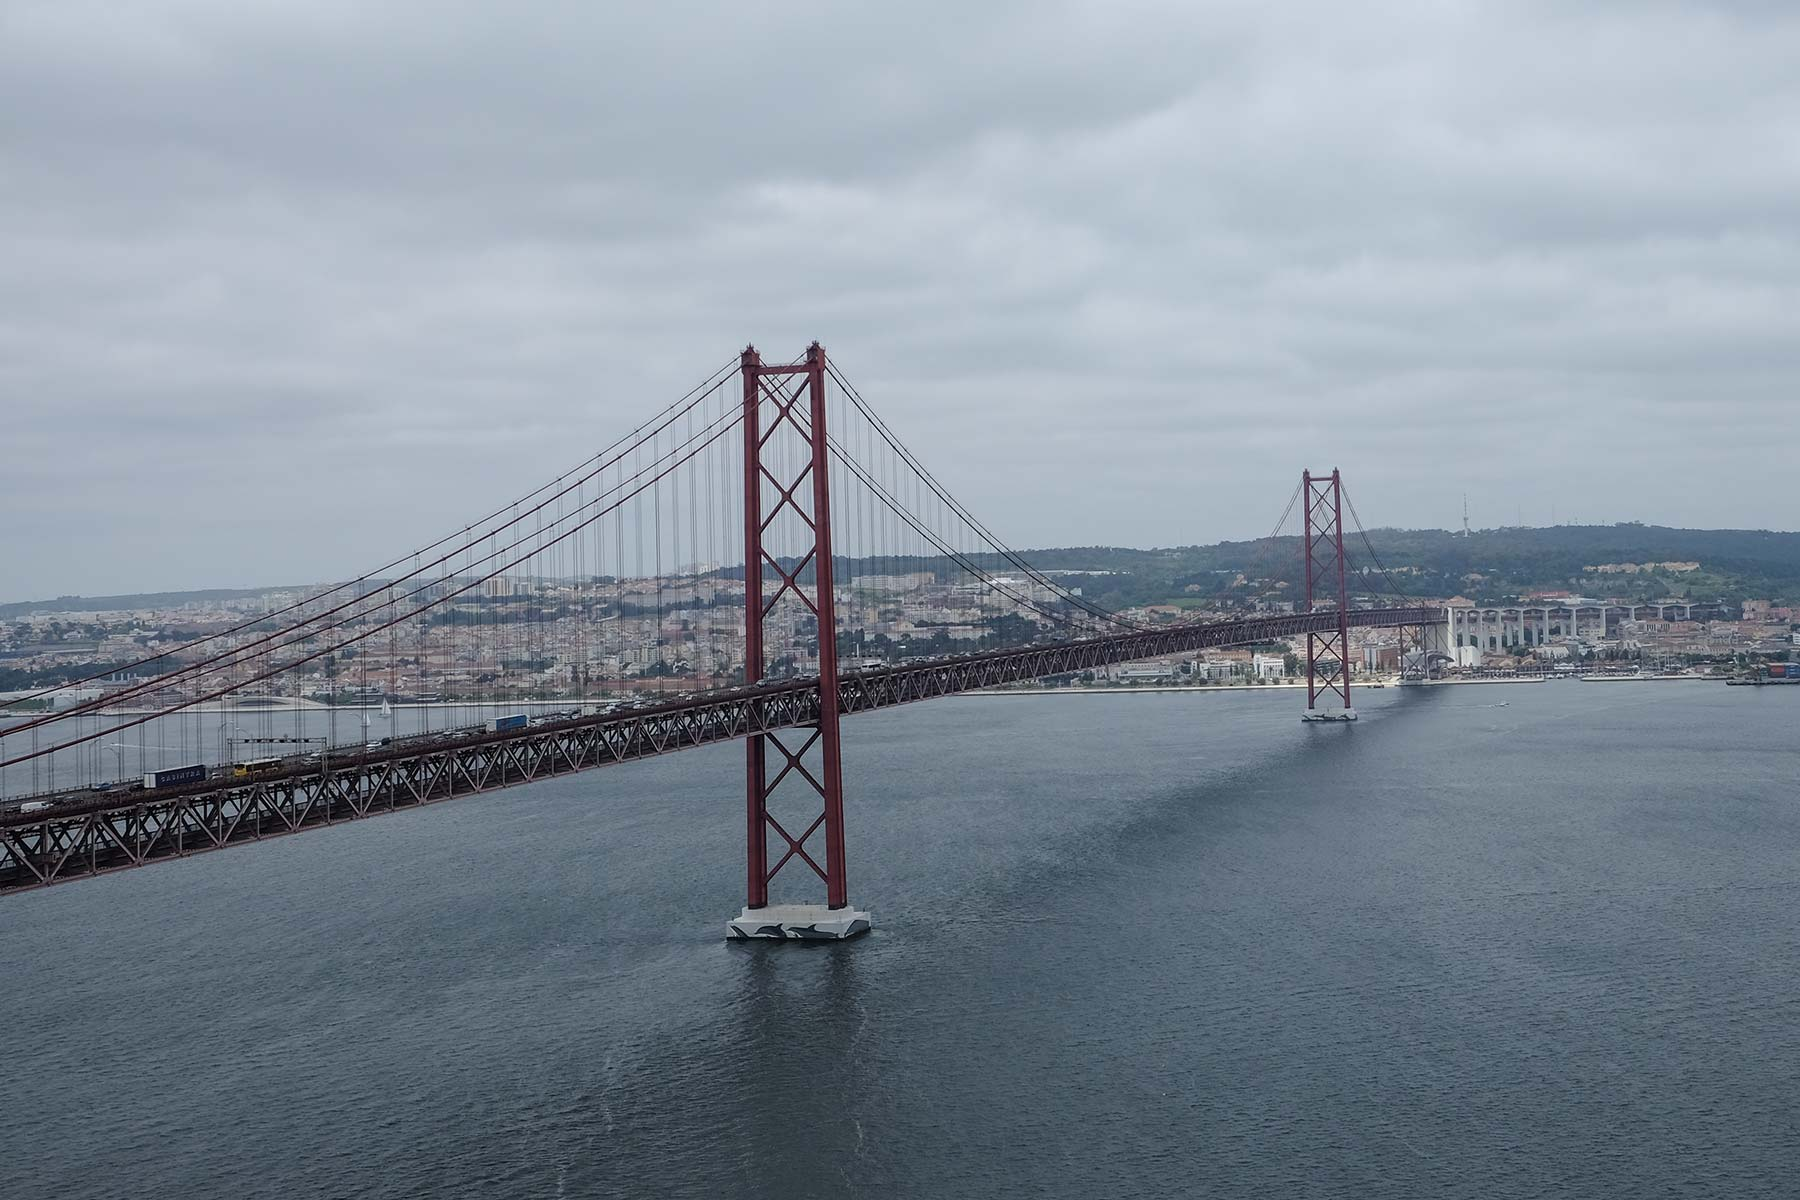 Ponte 25 de Abril in Lissabon, Portugal